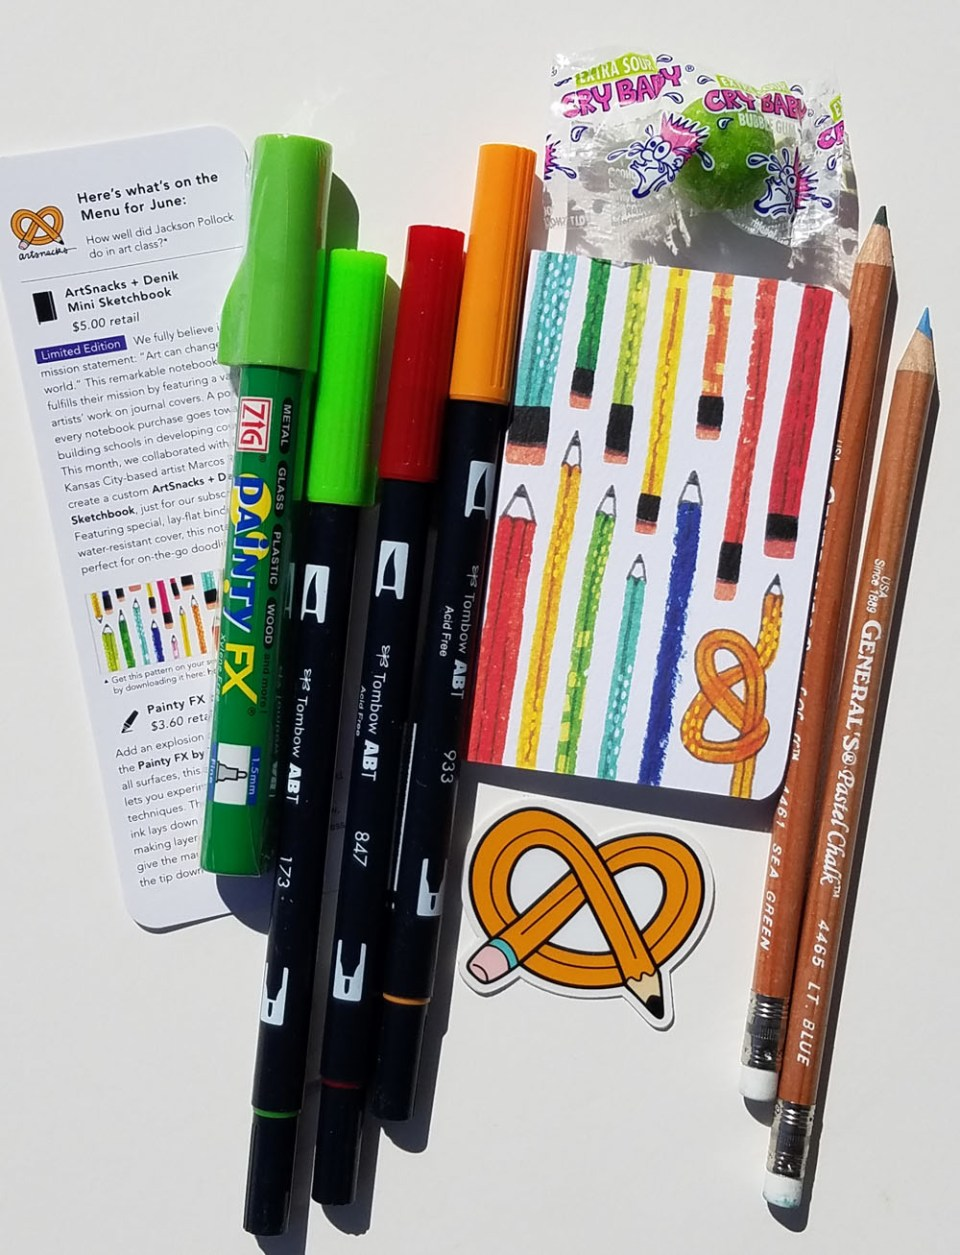 Product Review: ArtSnacks June 2017 Subscription Box